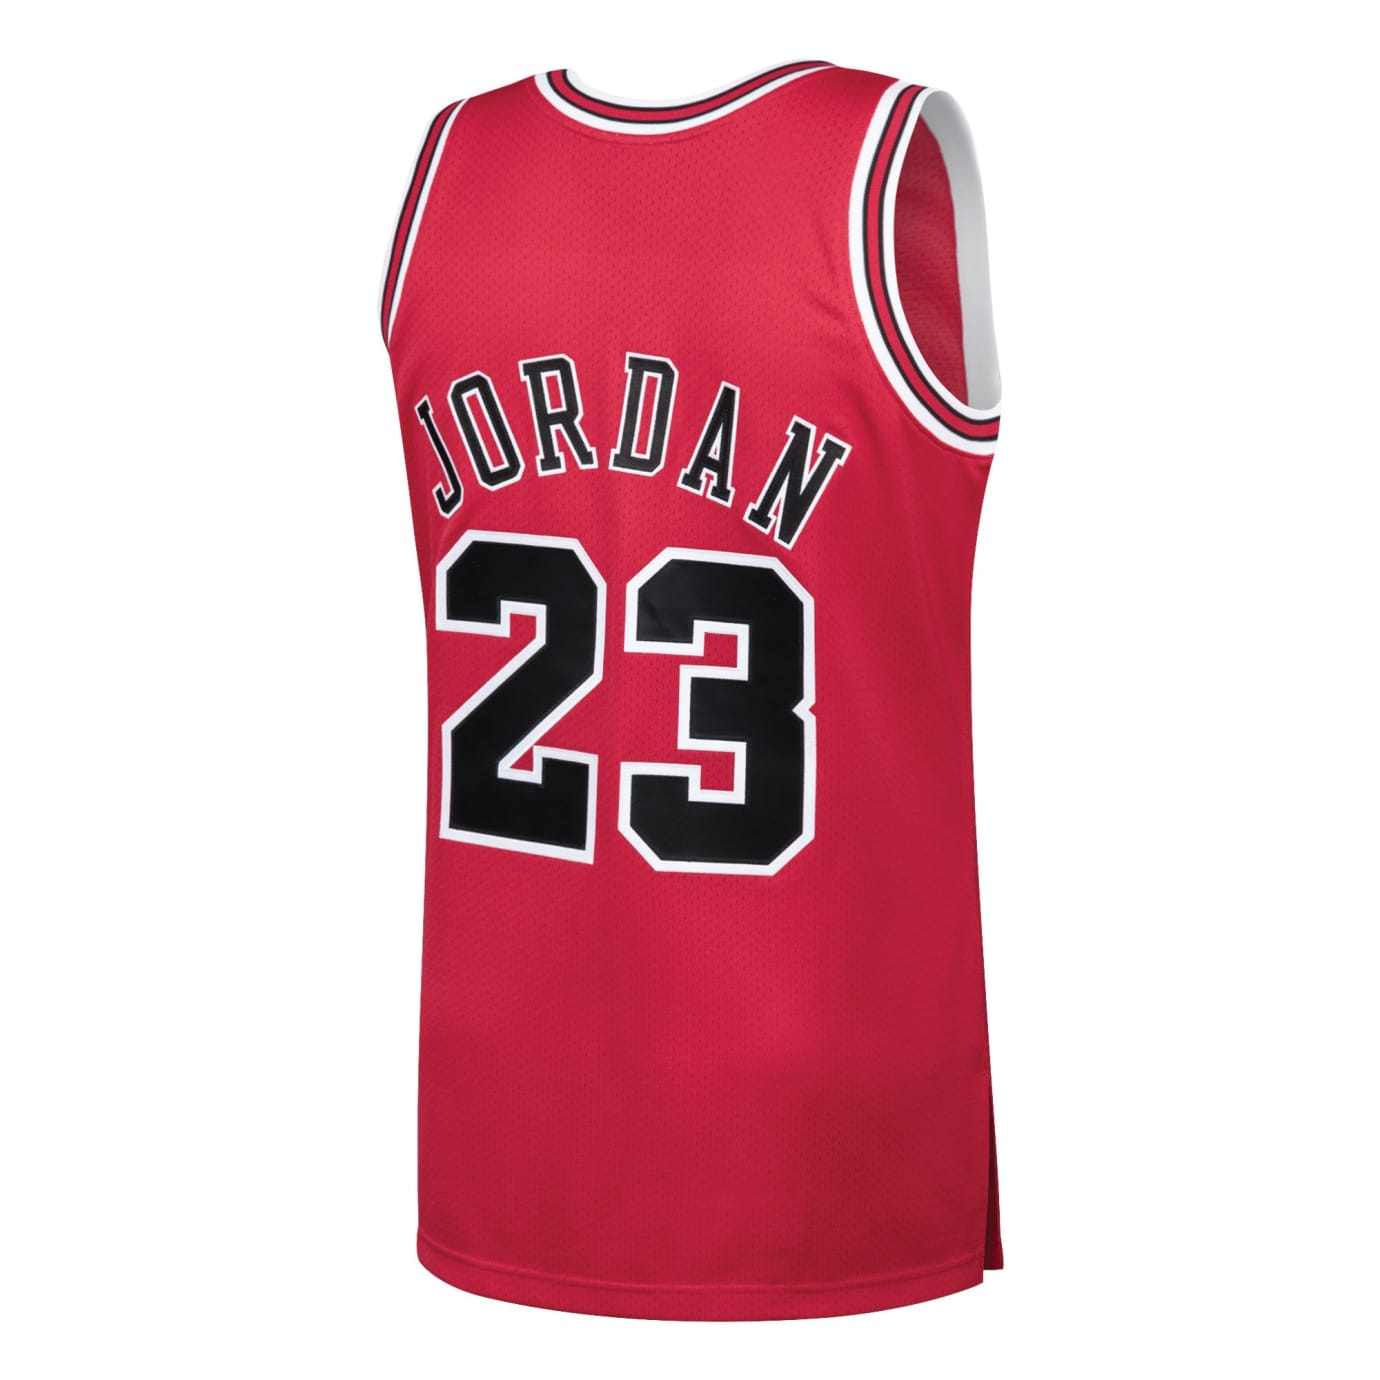 Mitchell and Ness Michael Jordan 1997-98 NBA Finals Jersey (Back)